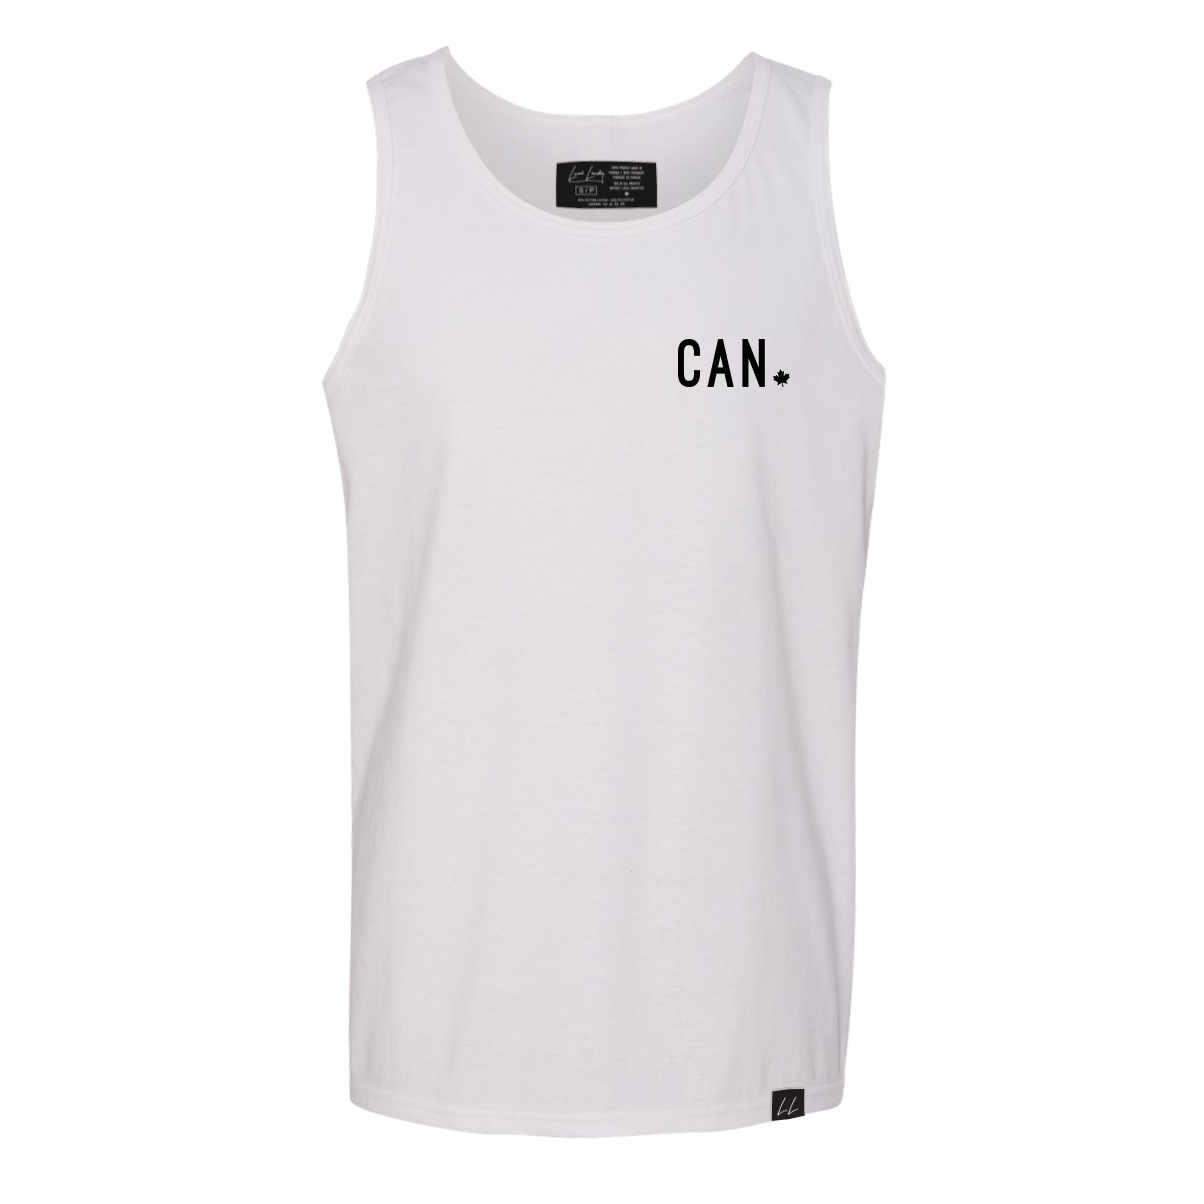 Made in Canada CAN Tank - Unisex - White